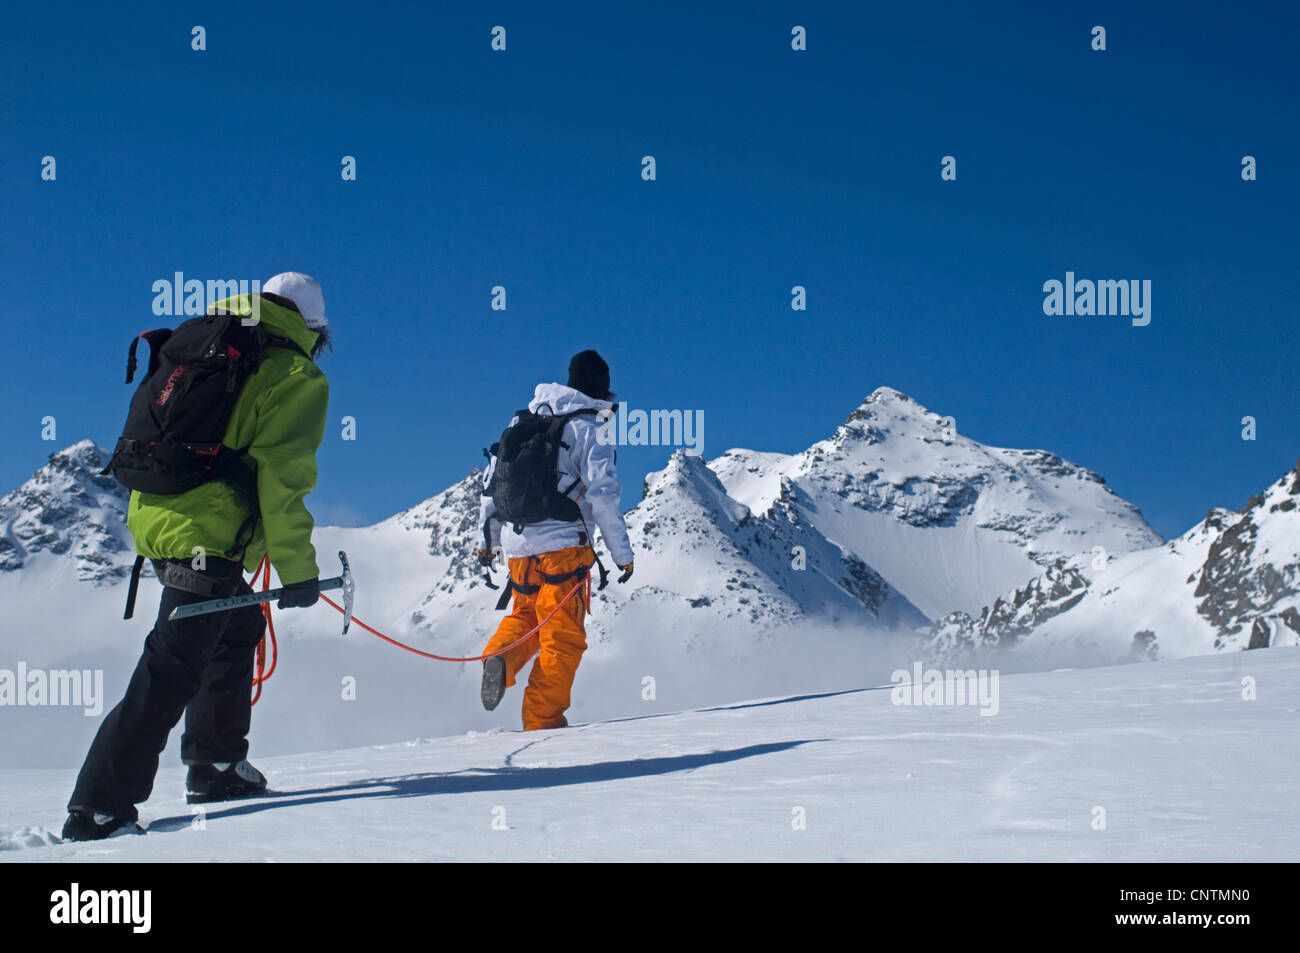 alpinism in the snow capped mountains of the Vanoise National Park, France, Savoie - Stock Image